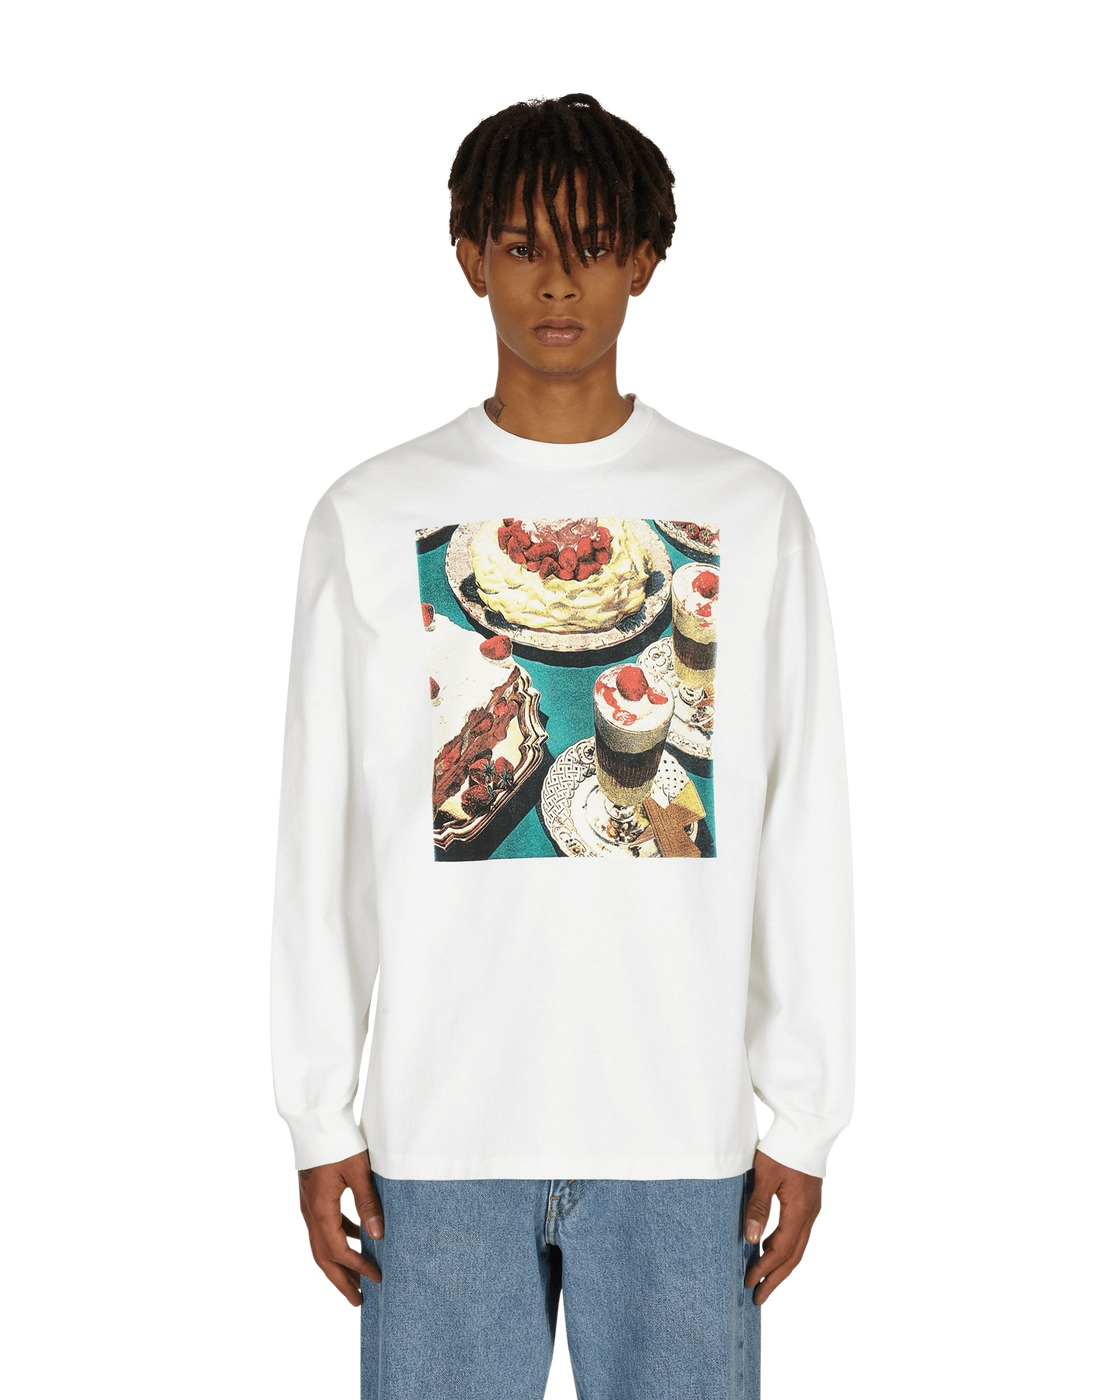 Photo: Levi's Vintage Central Station Design 80s Graphic Longsleeve T Shirt Squirrel Multi Colored